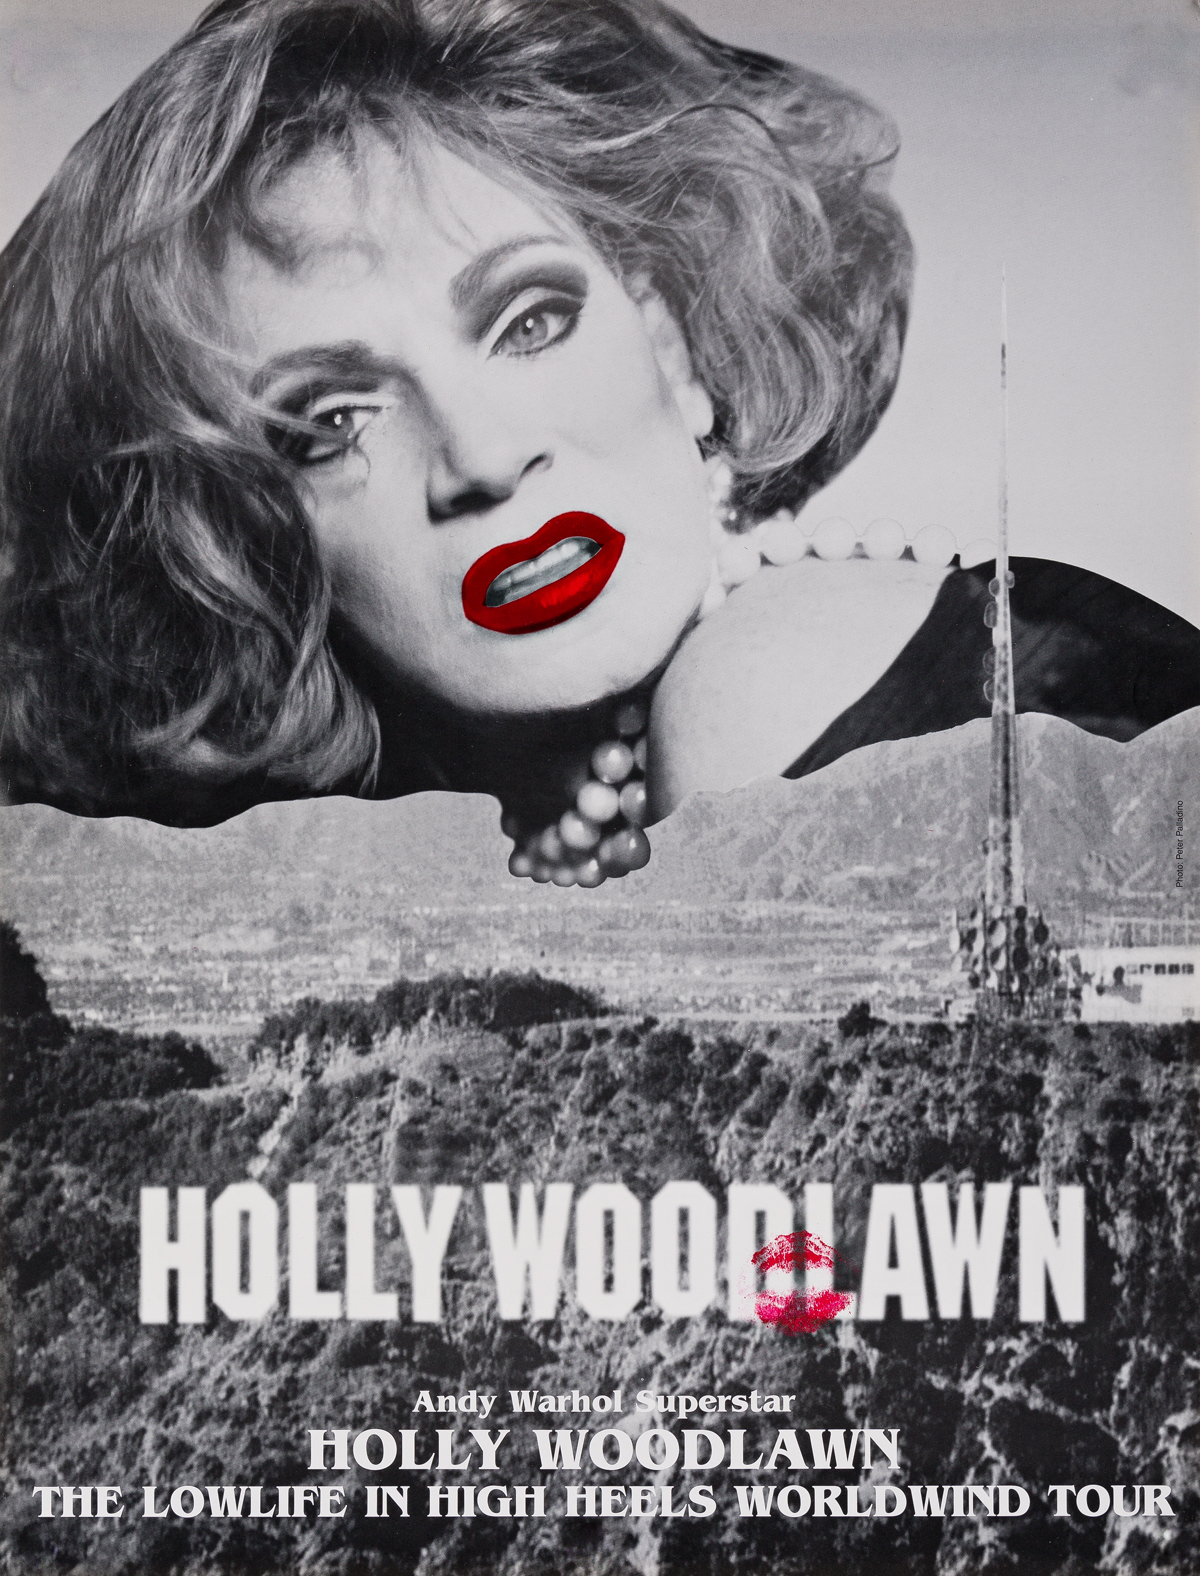 PETER-PALLADINO-(1952-)-Holly-Woodlawn--The-Lowlife-in-High-